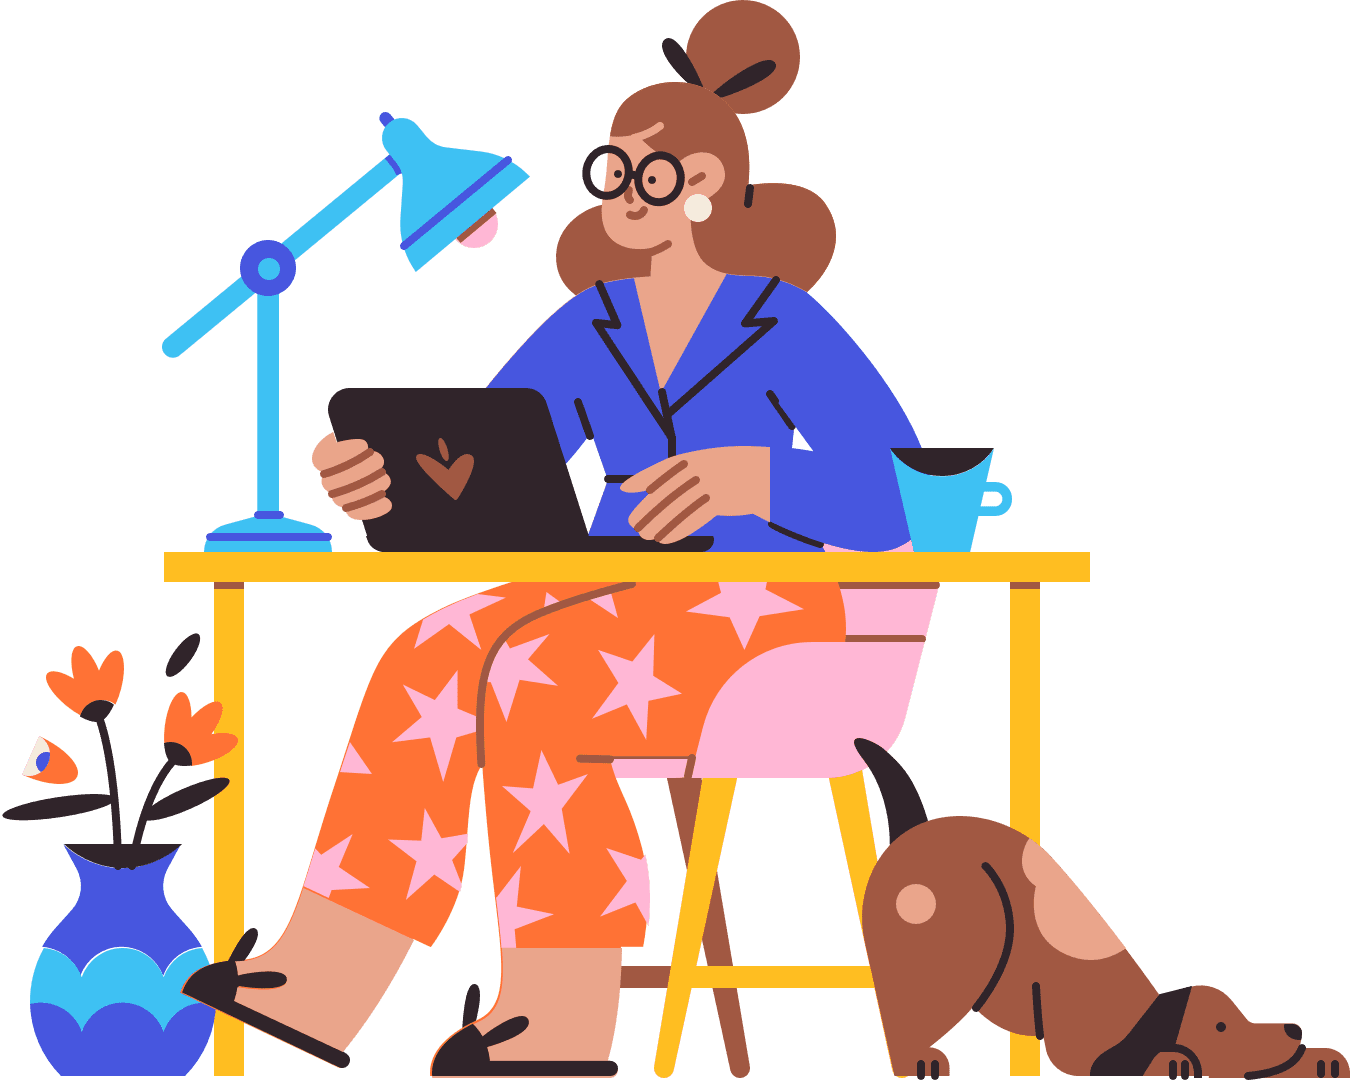 Illustration of person sitting at a desk with an open laptop and a dog on the floor